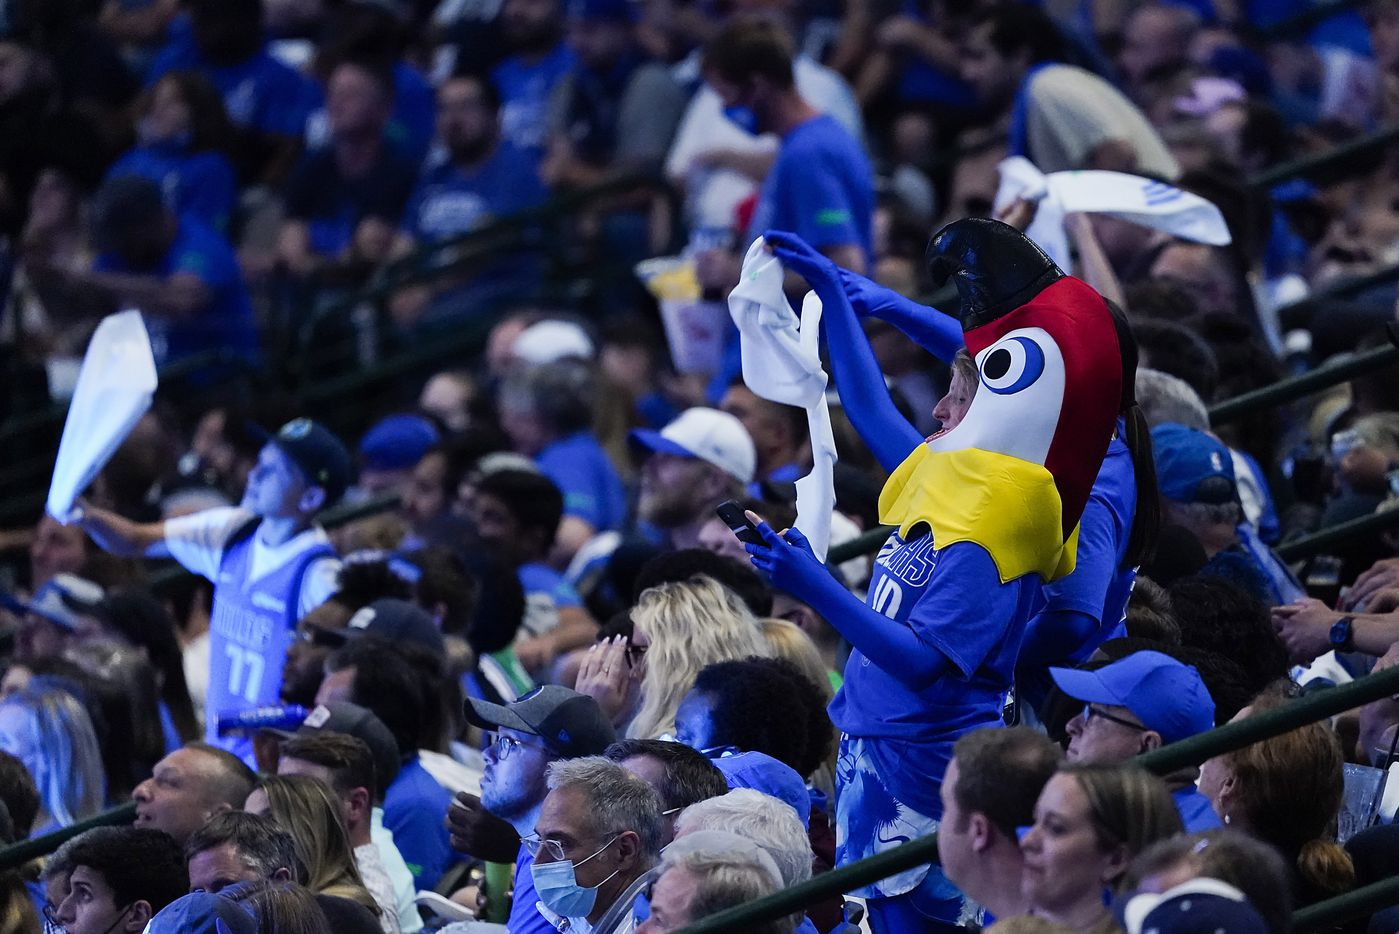 Dallas Mavericks fans dance during a timeout in the second quarter of an NBA playoff basketball game against the LA Clippers at American Airlines Center on Sunday, May 30, 2021, in Dallas.